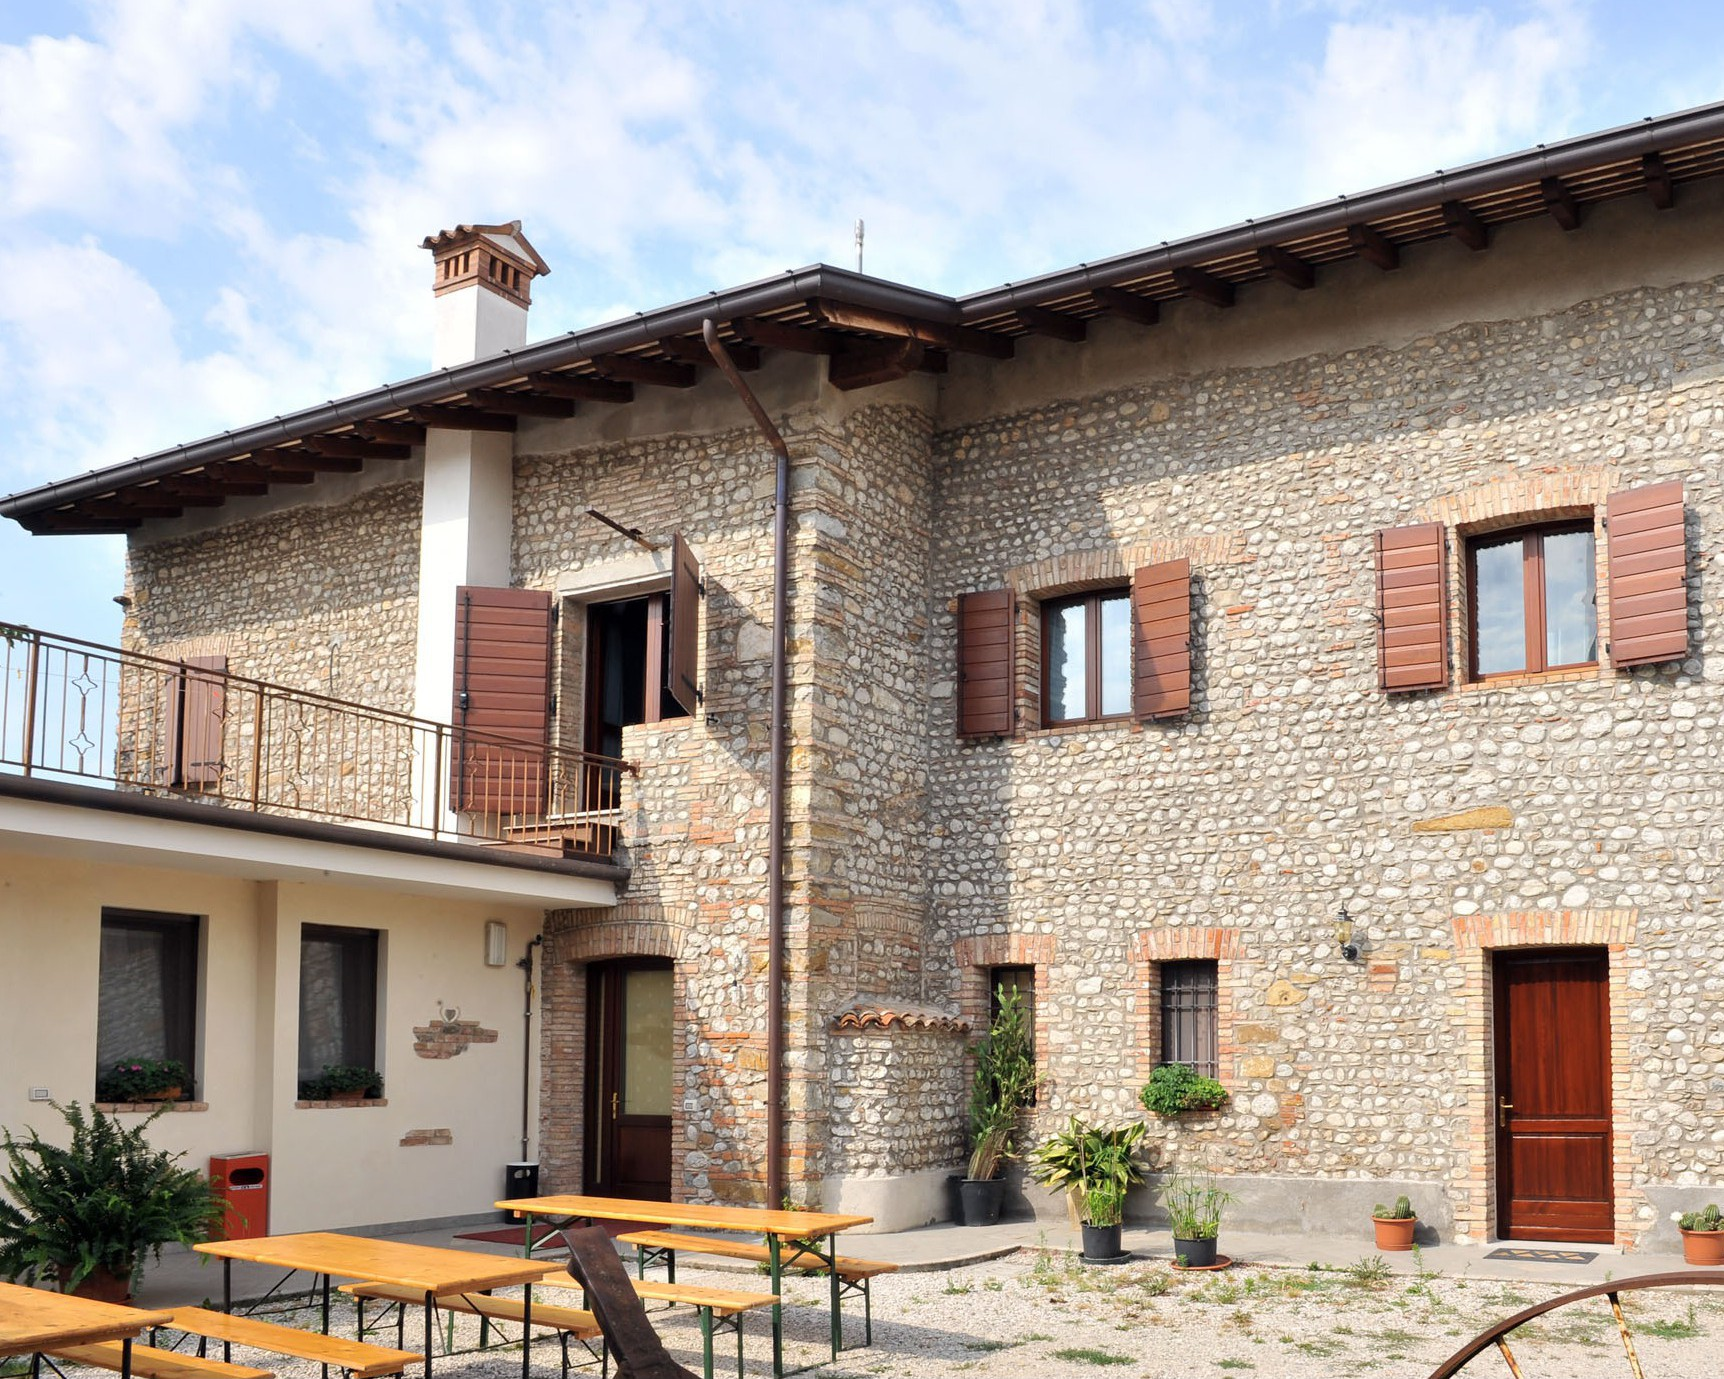 Our Agriturismo